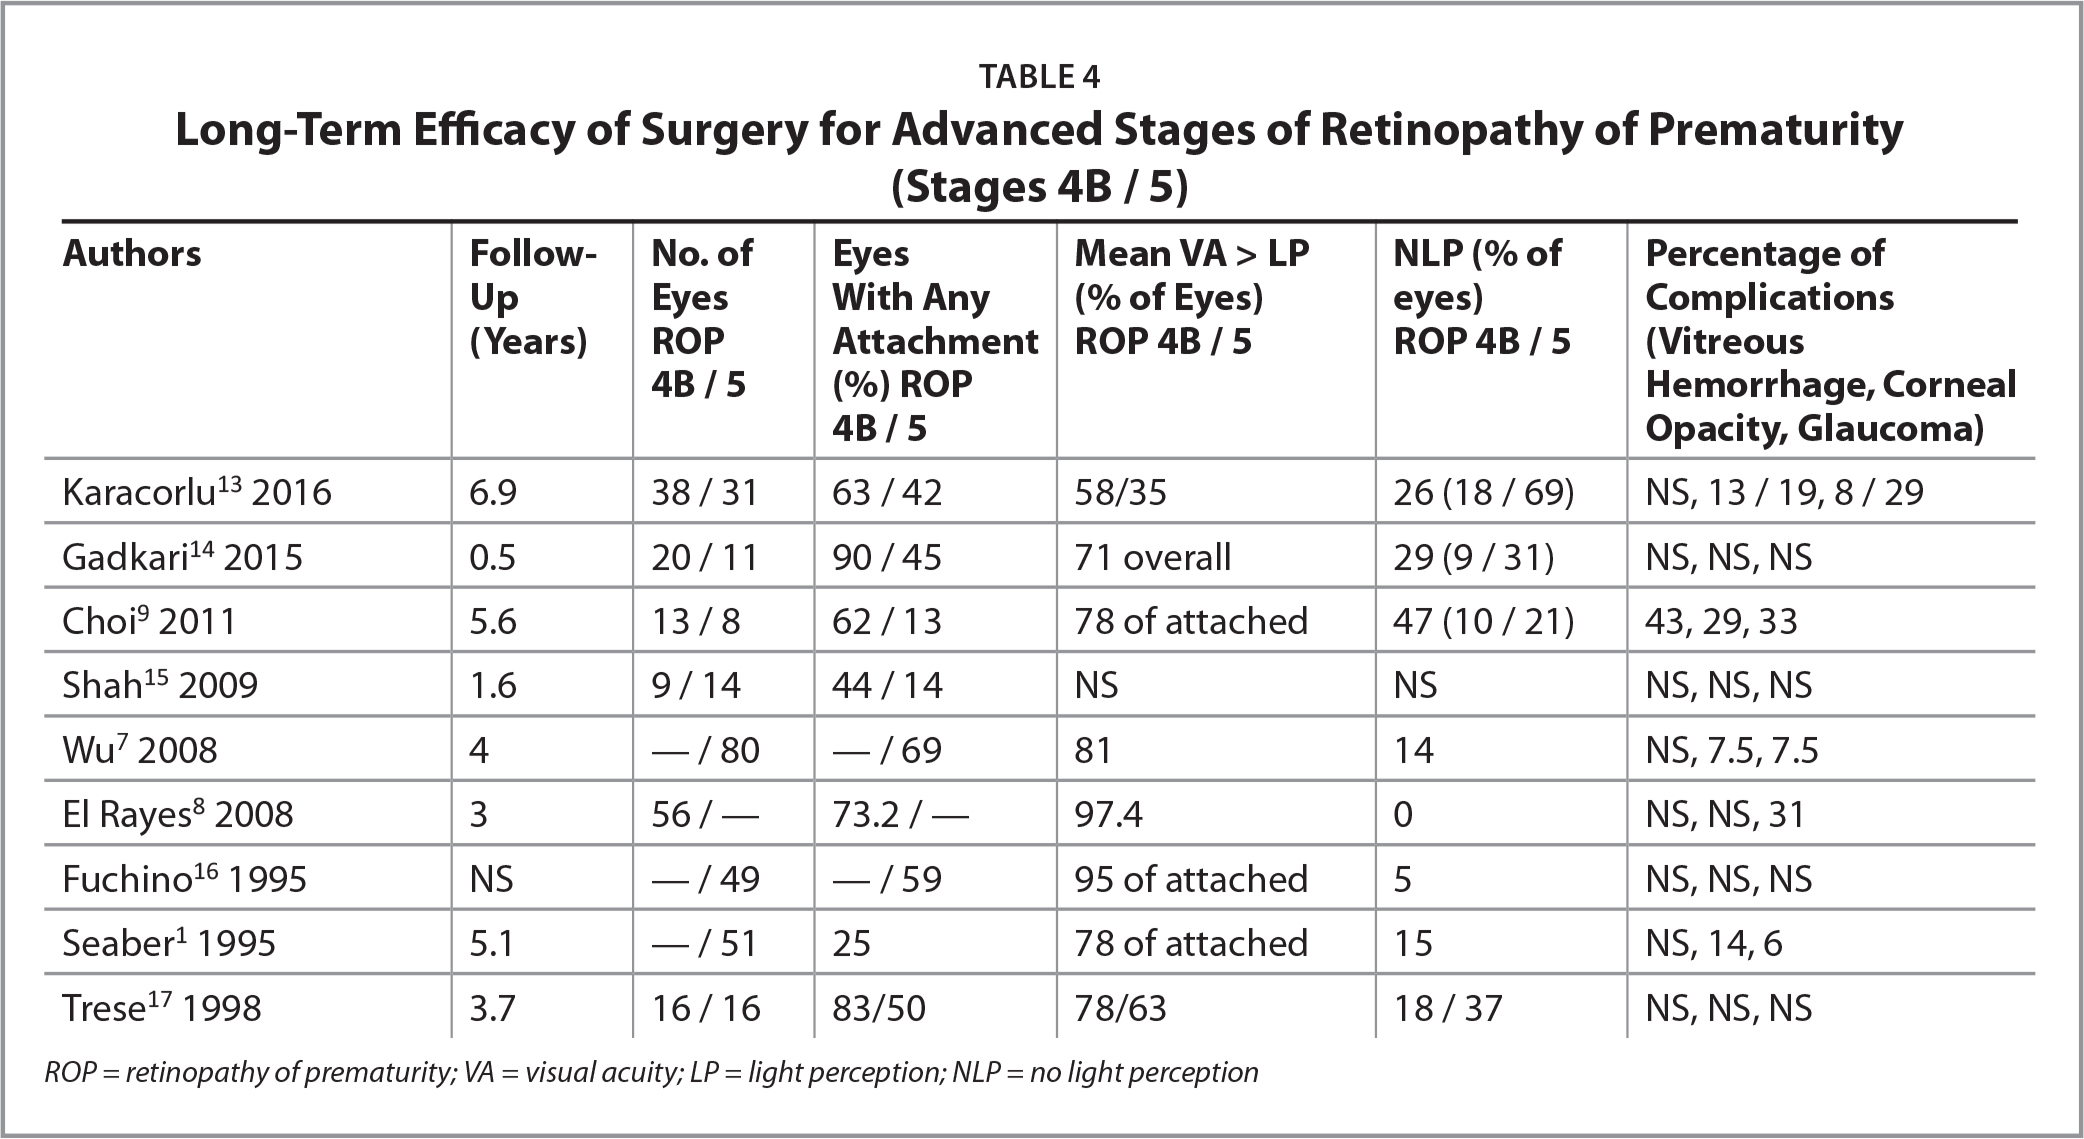 Long-Term Efficacy of Surgery for Advanced Stages of Retinopathy of Prematurity (Stages 4B / 5)